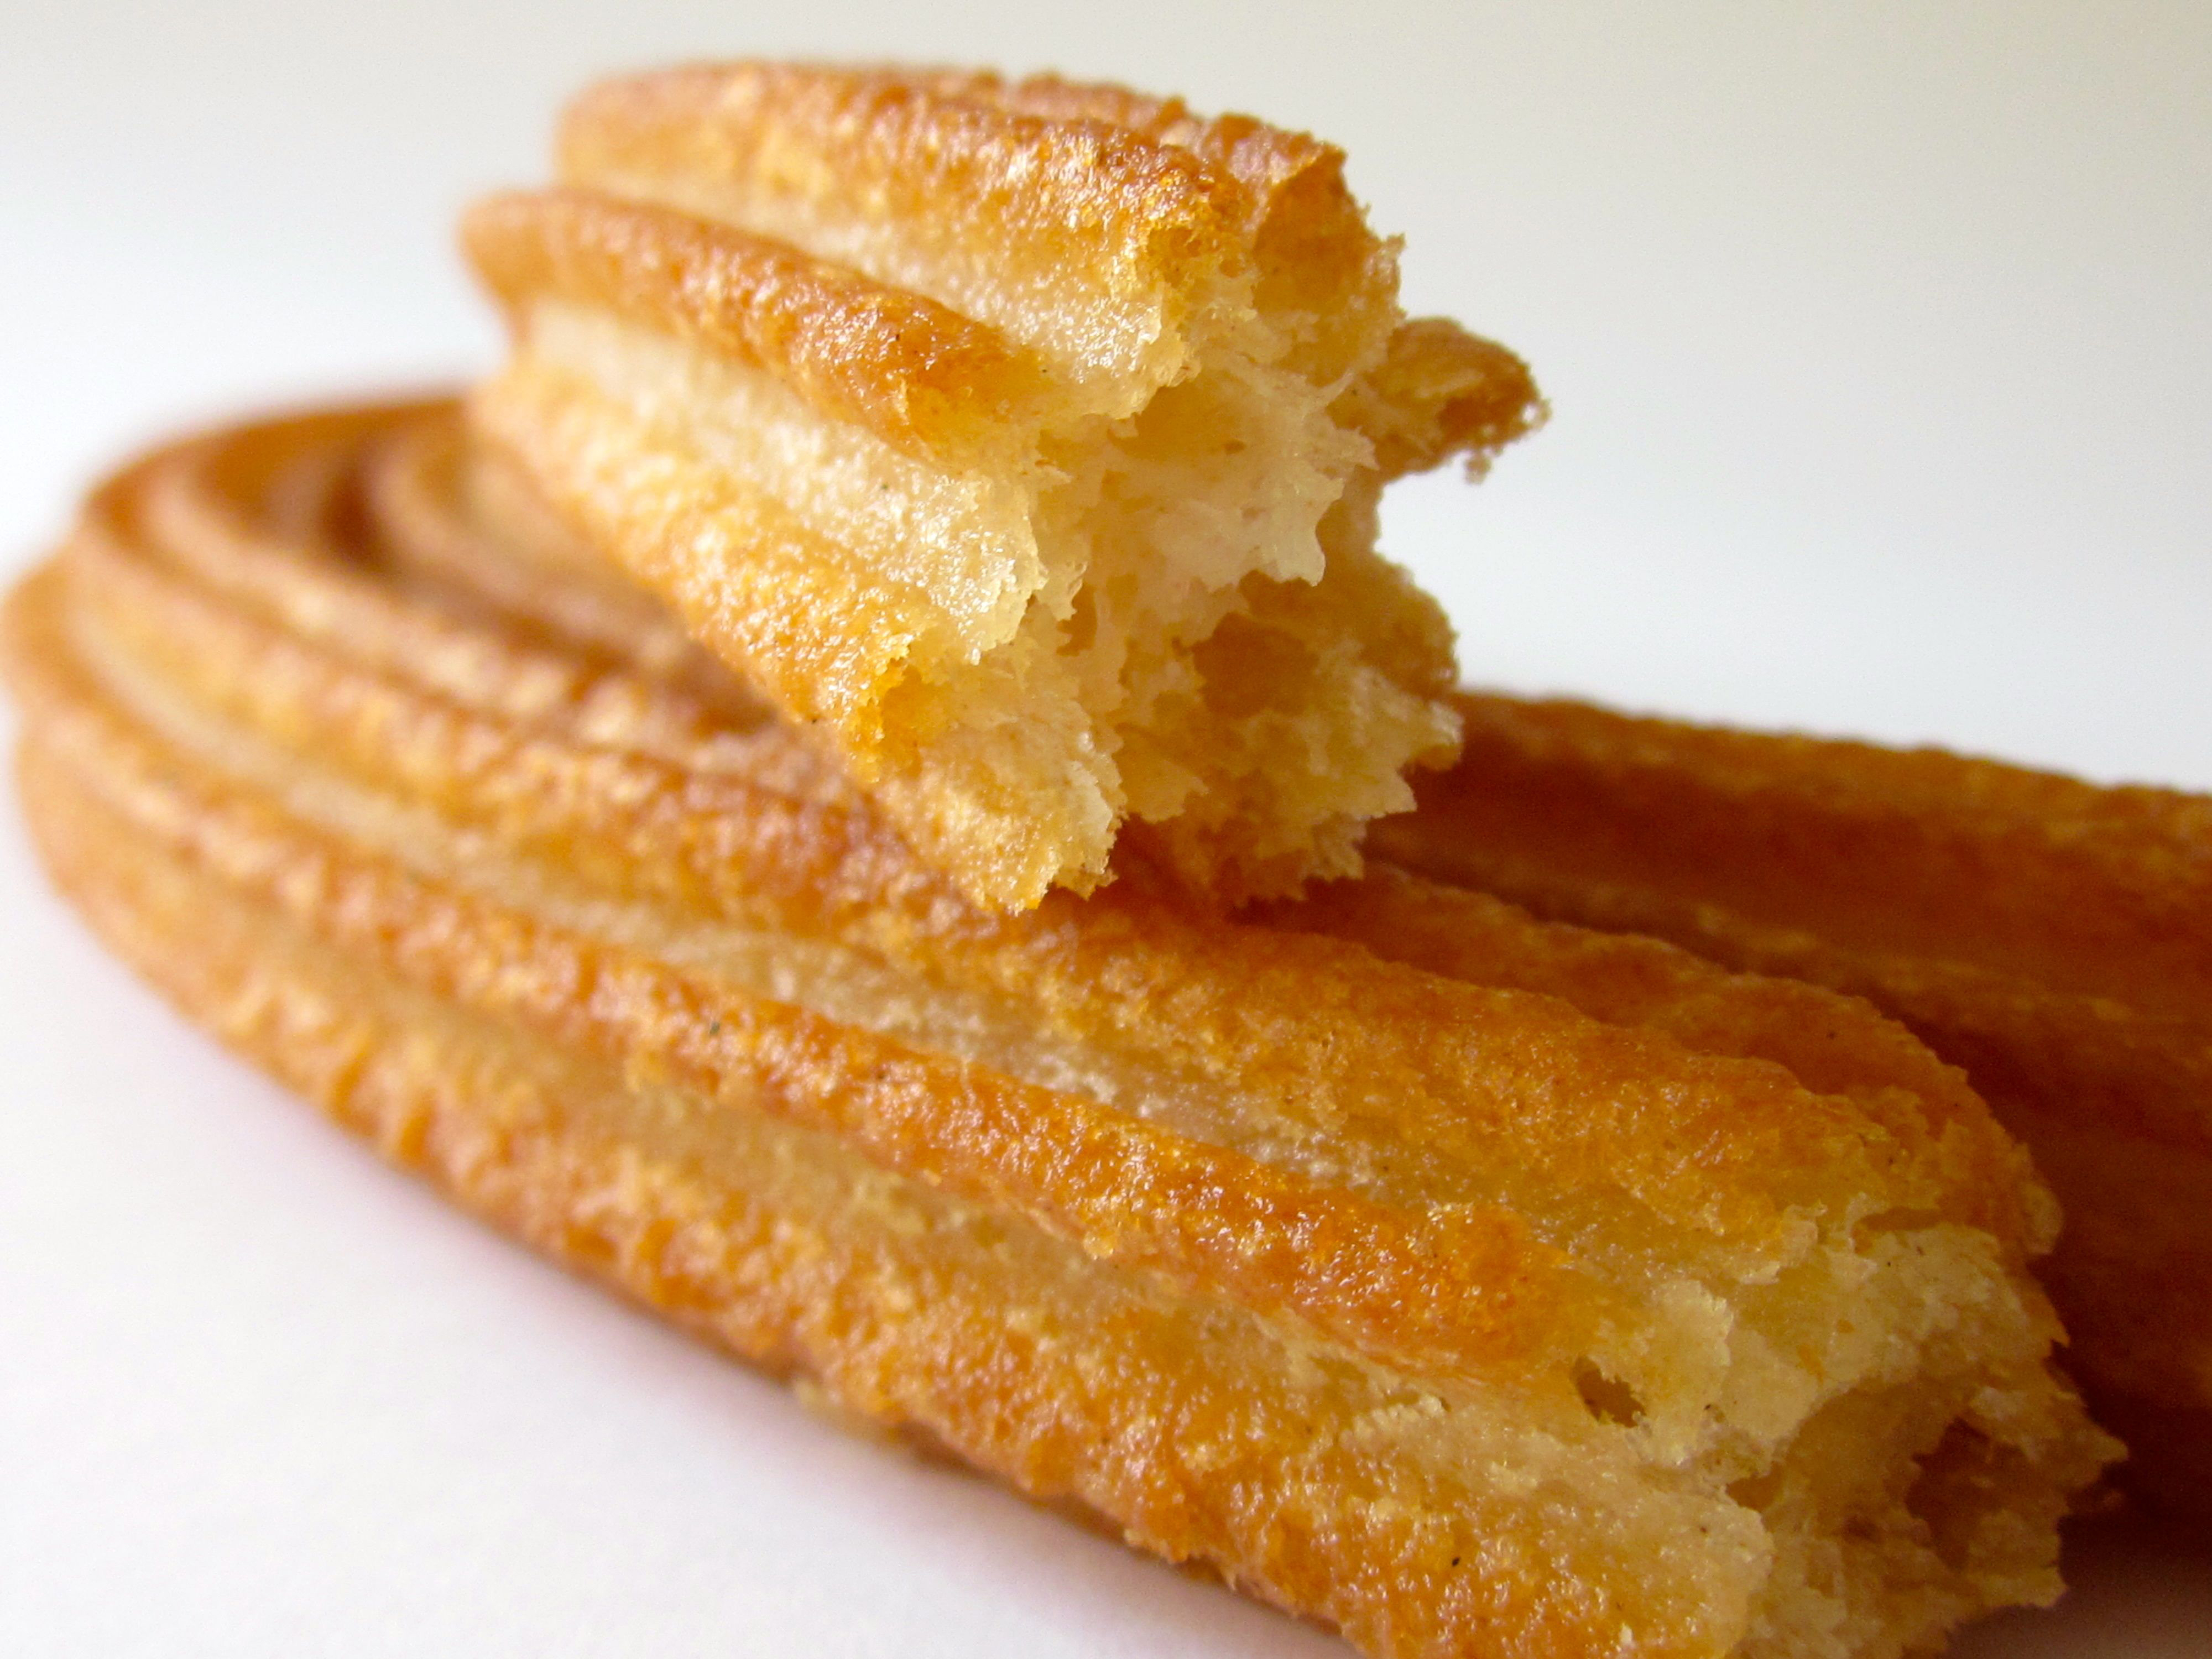 churros-reparto-hosteleria-zaragoza-churreria-el-jalon